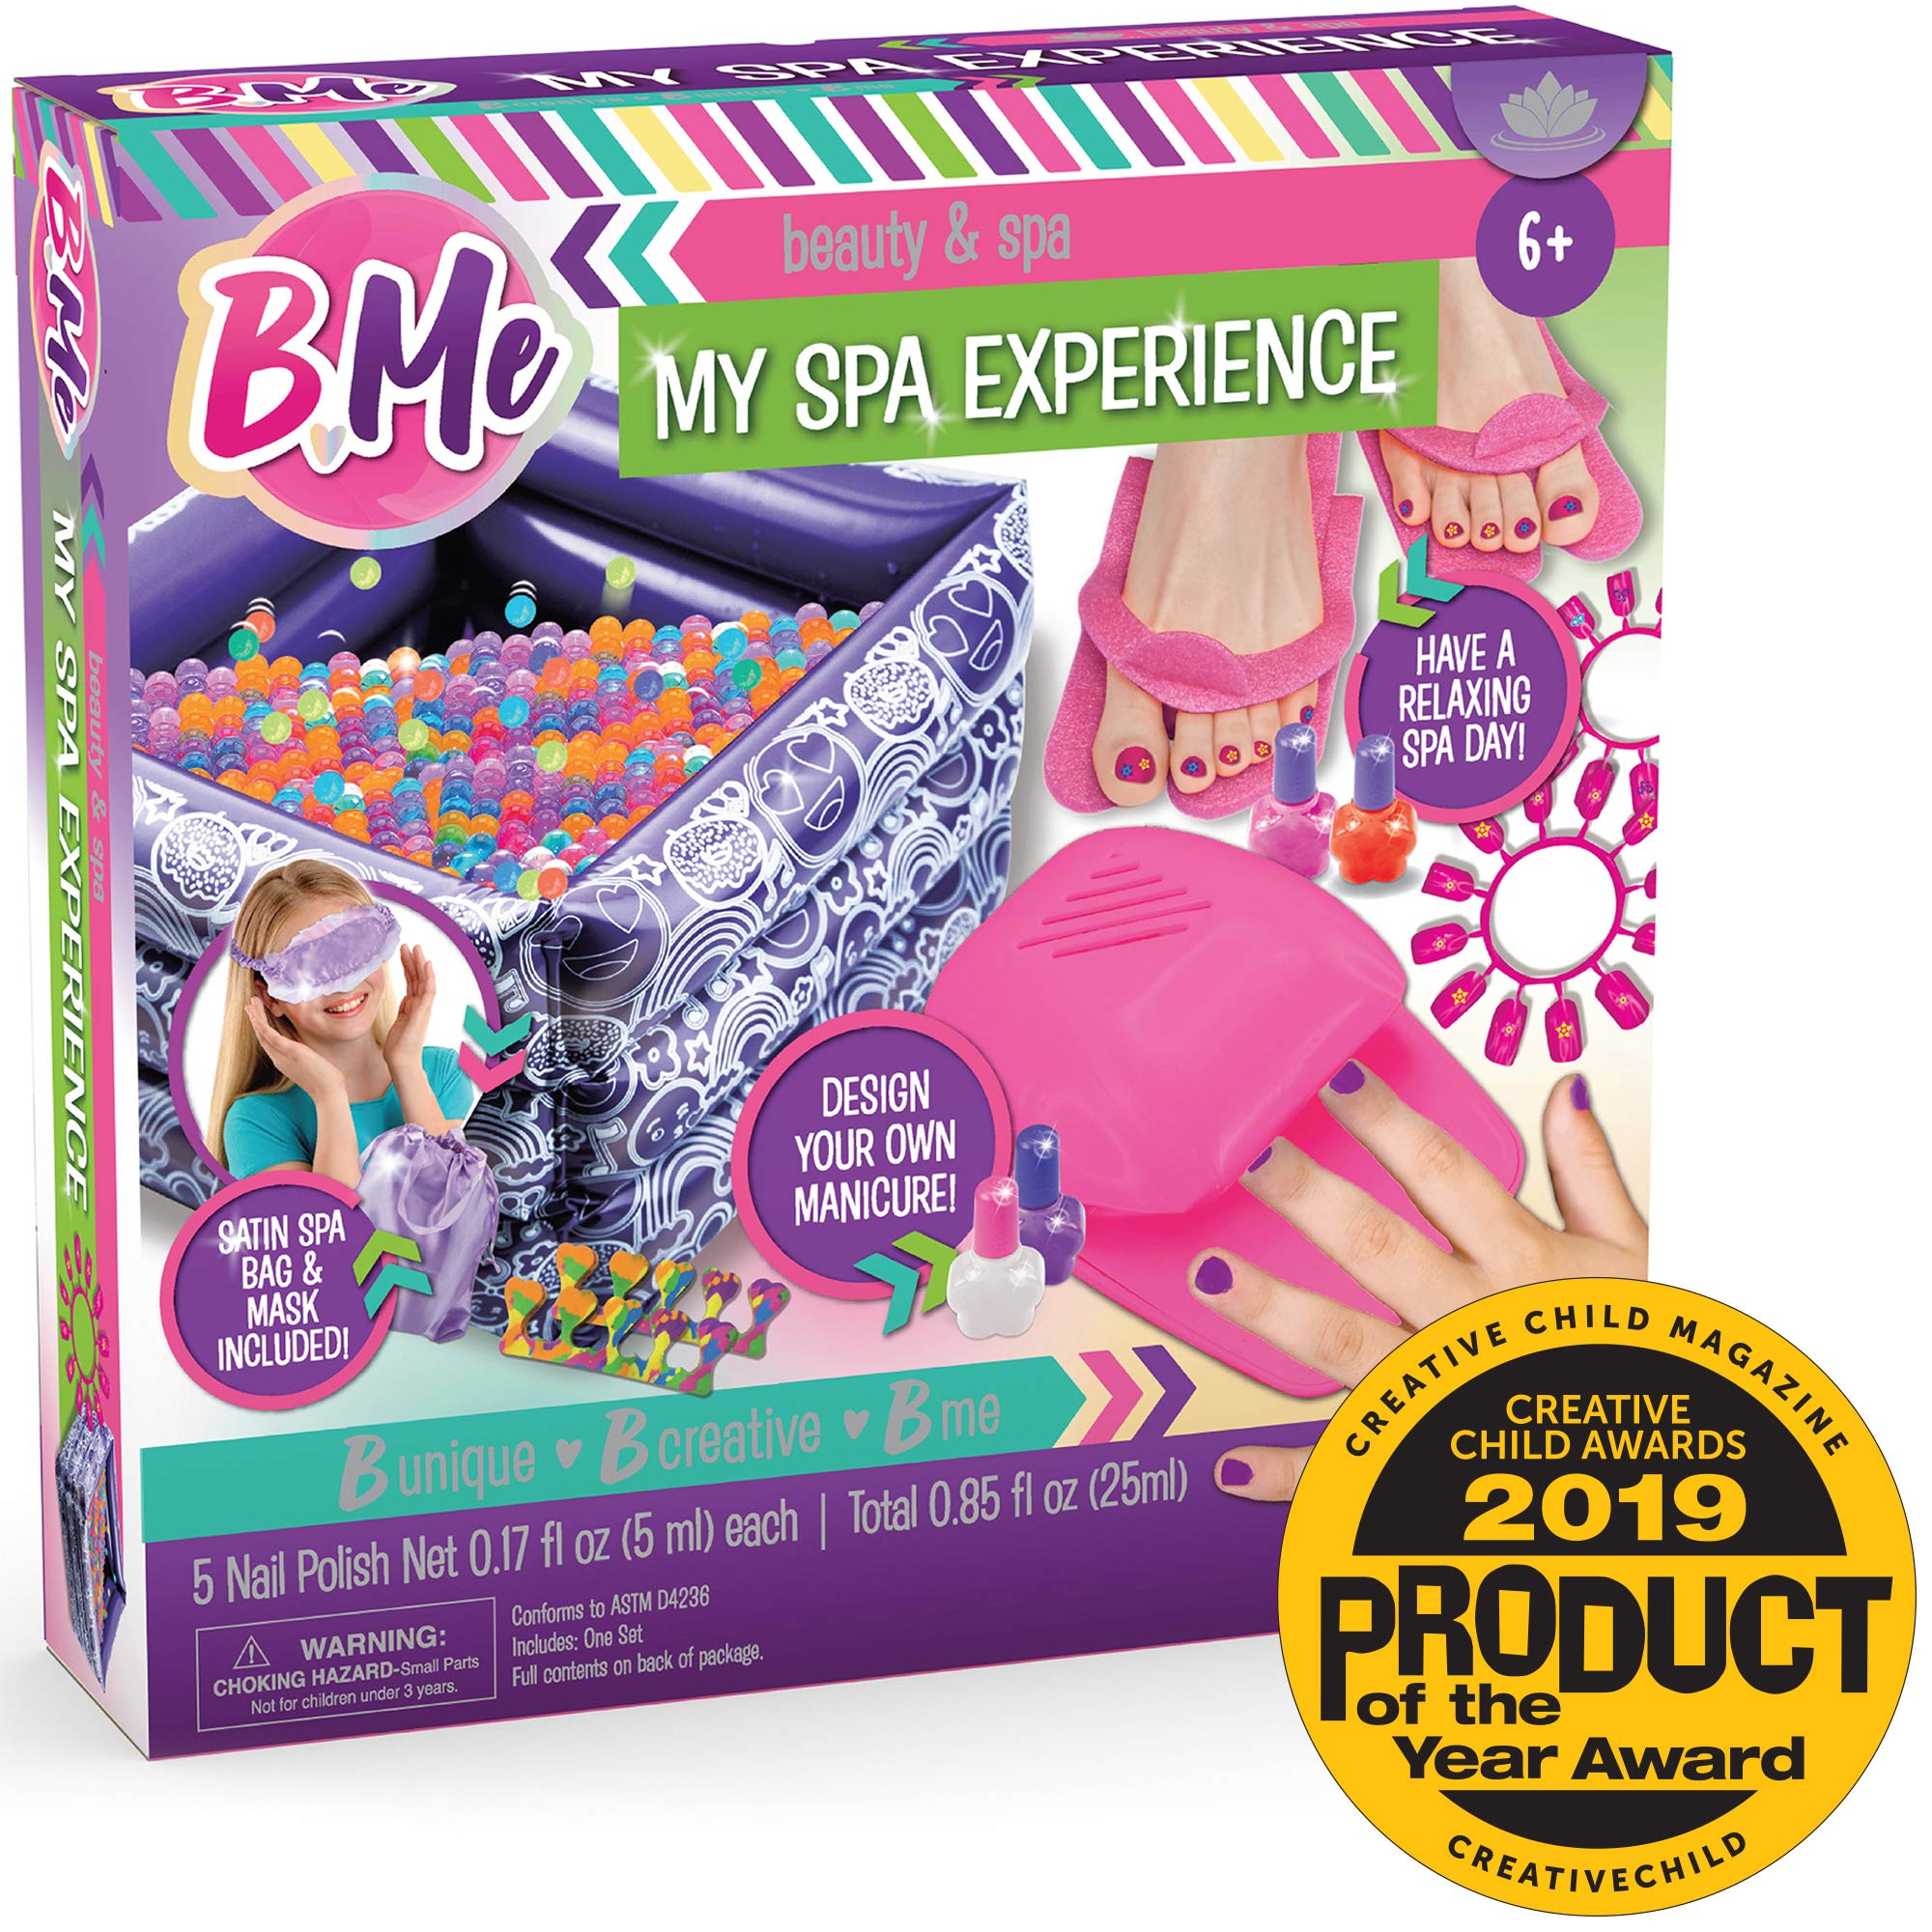 B Me My Spa Experience - Ultimate Kids Spa Kit w/ Nail Polish, Press On Nails, Nail Dryer, Stickers, Decals, Pedicure Pool, Bath Beads, Mask, Slippers, Satin Storage Bag & More - Amazon Exclusive by B Me